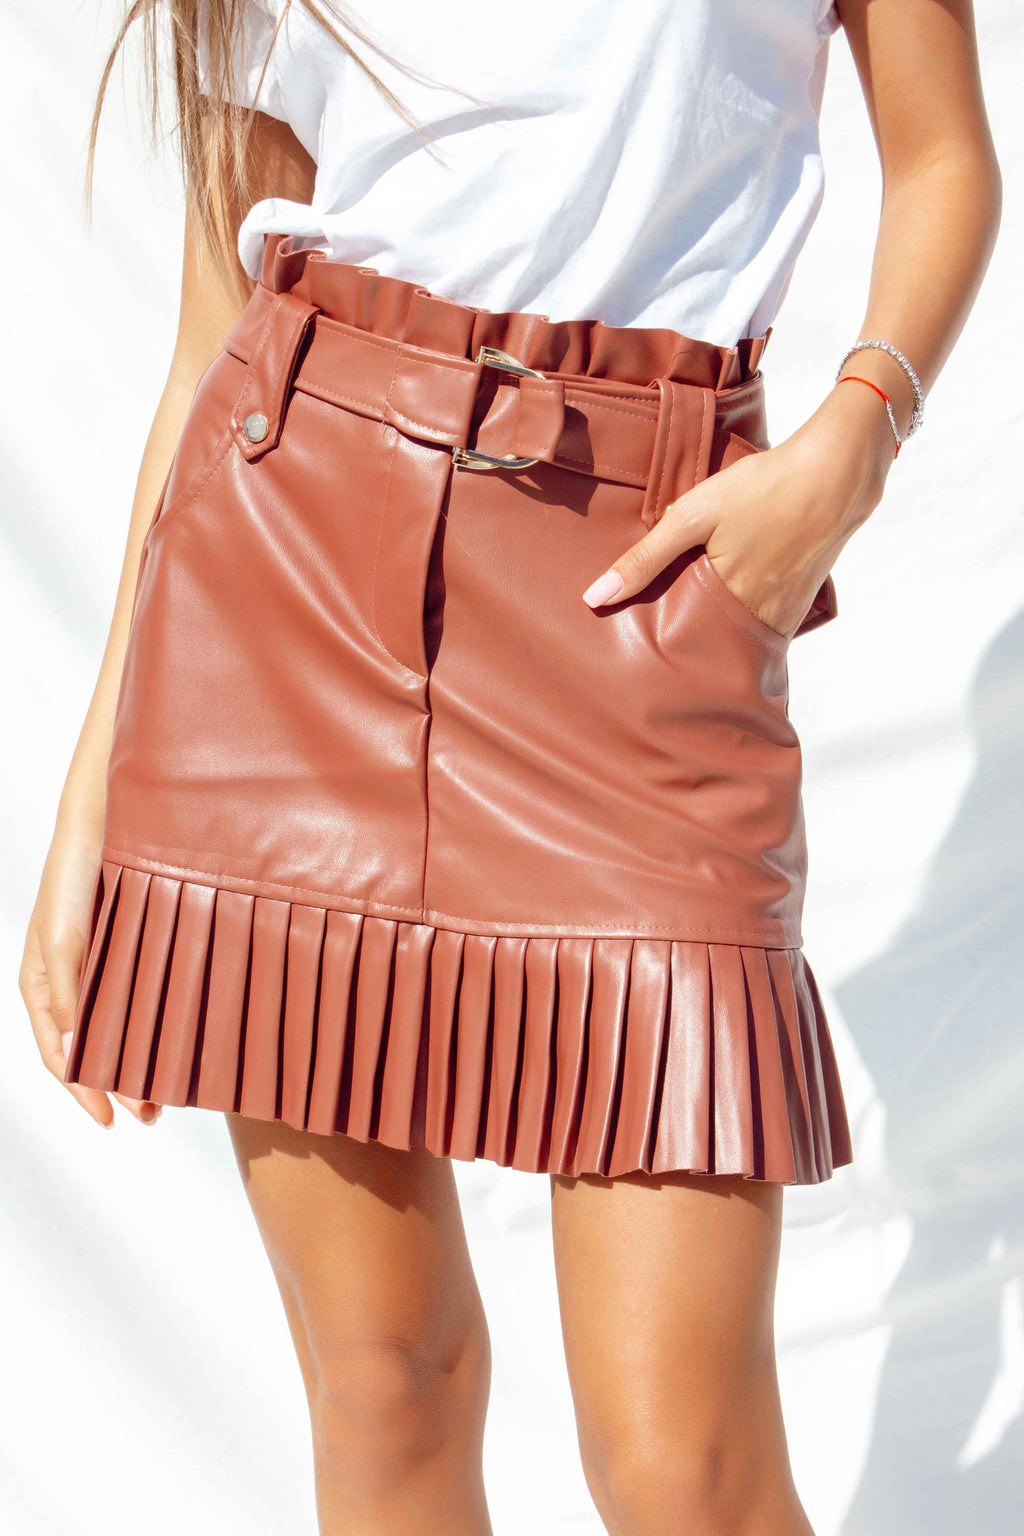 SILVIA SKIRT | Women's Online Shopping | CHICLEFRIQUE  (4345703268441)